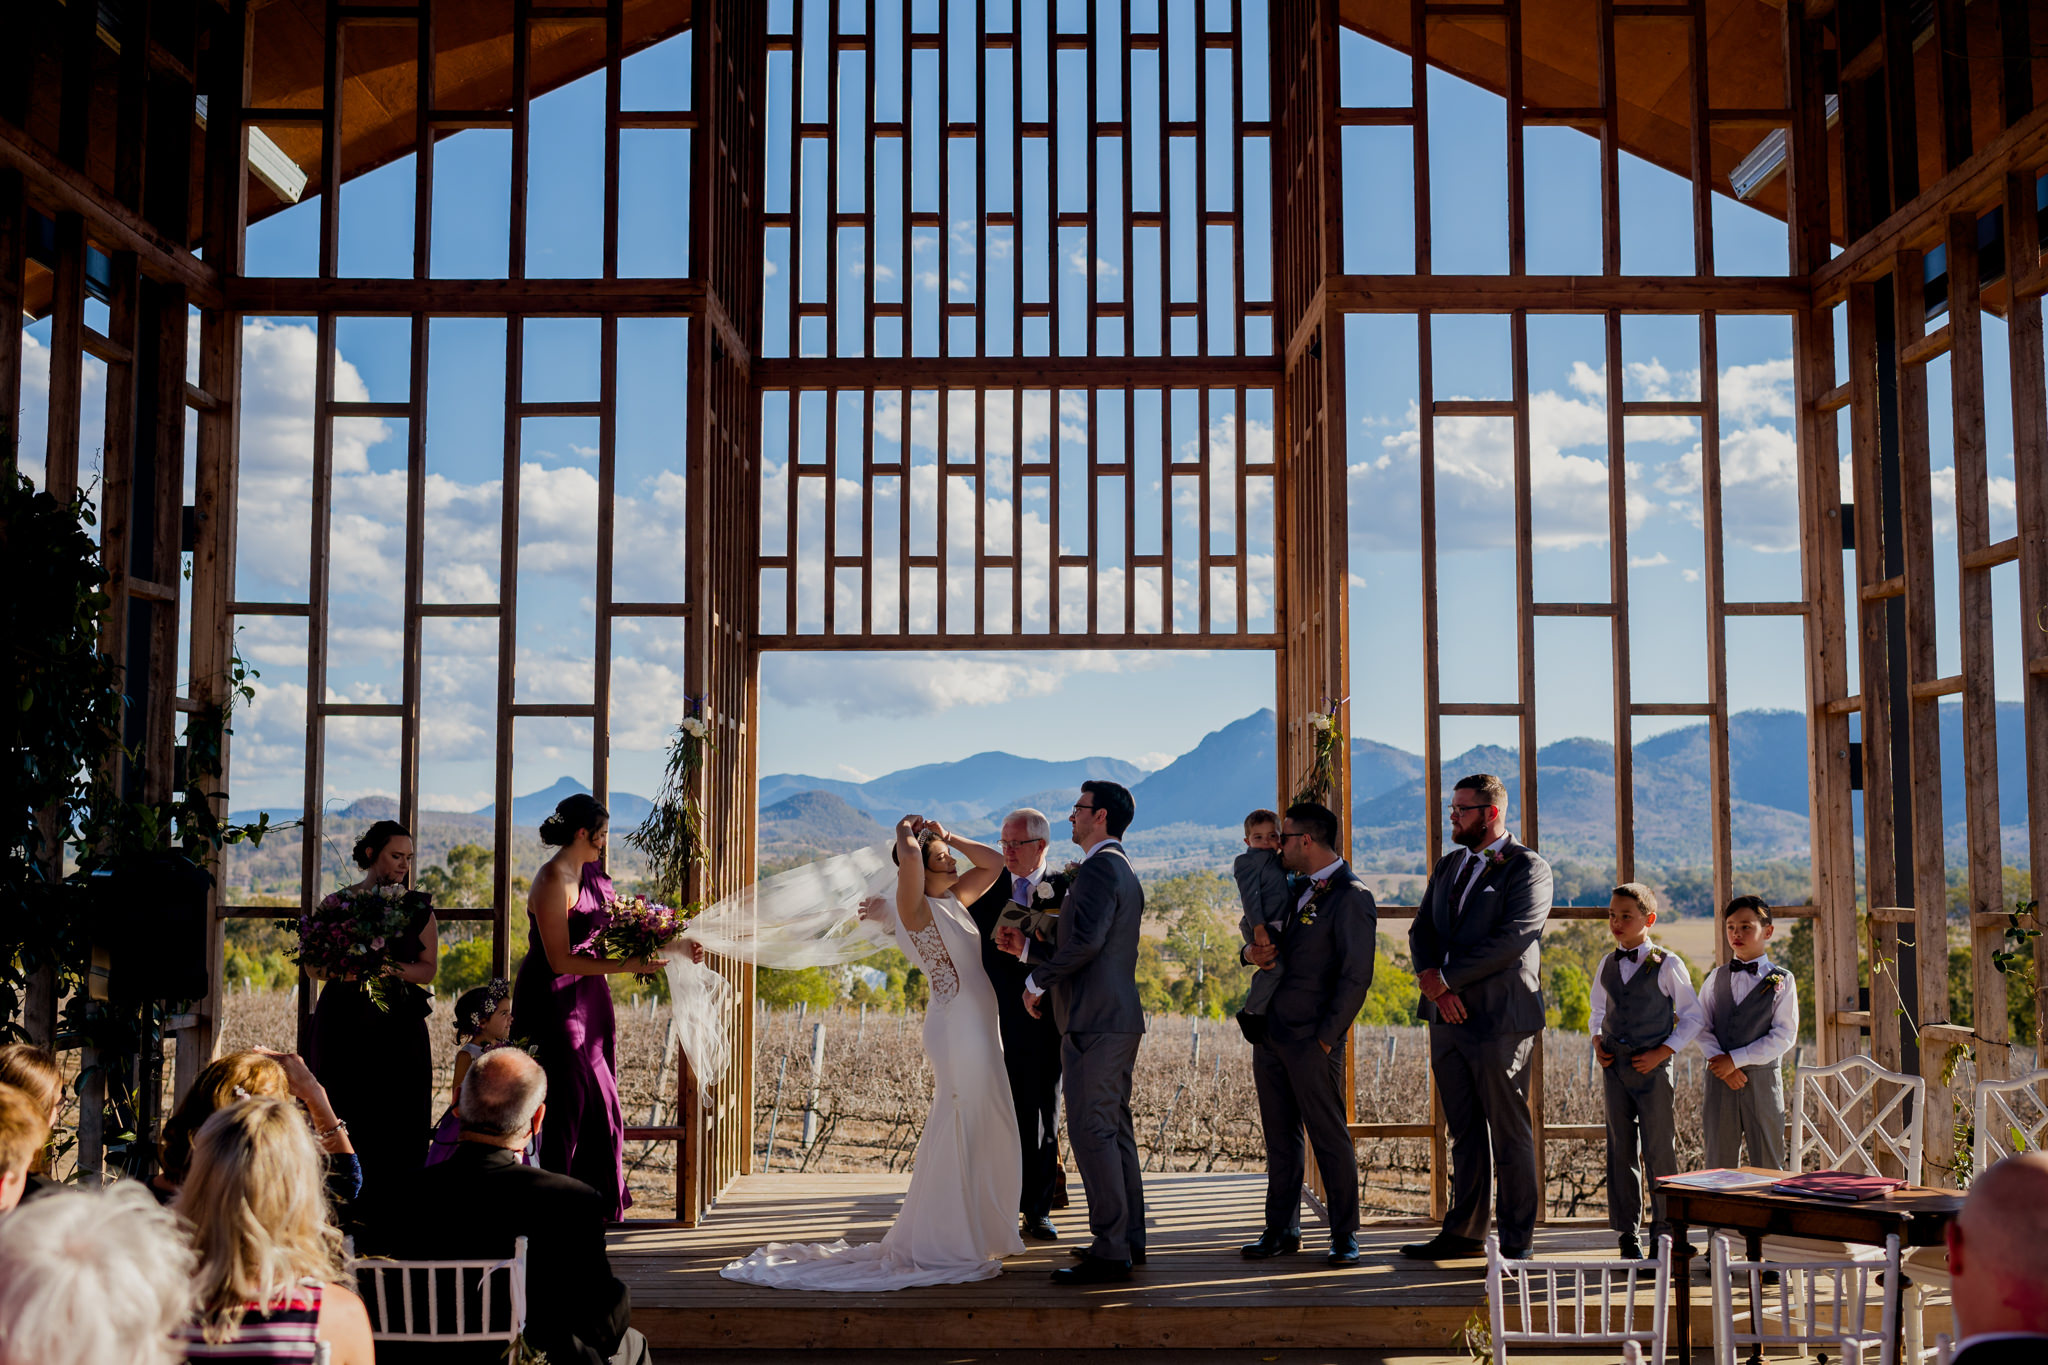 Bride and groom having their wedding ceremony in a wooden chapel at Kooroomba Lavender Farm